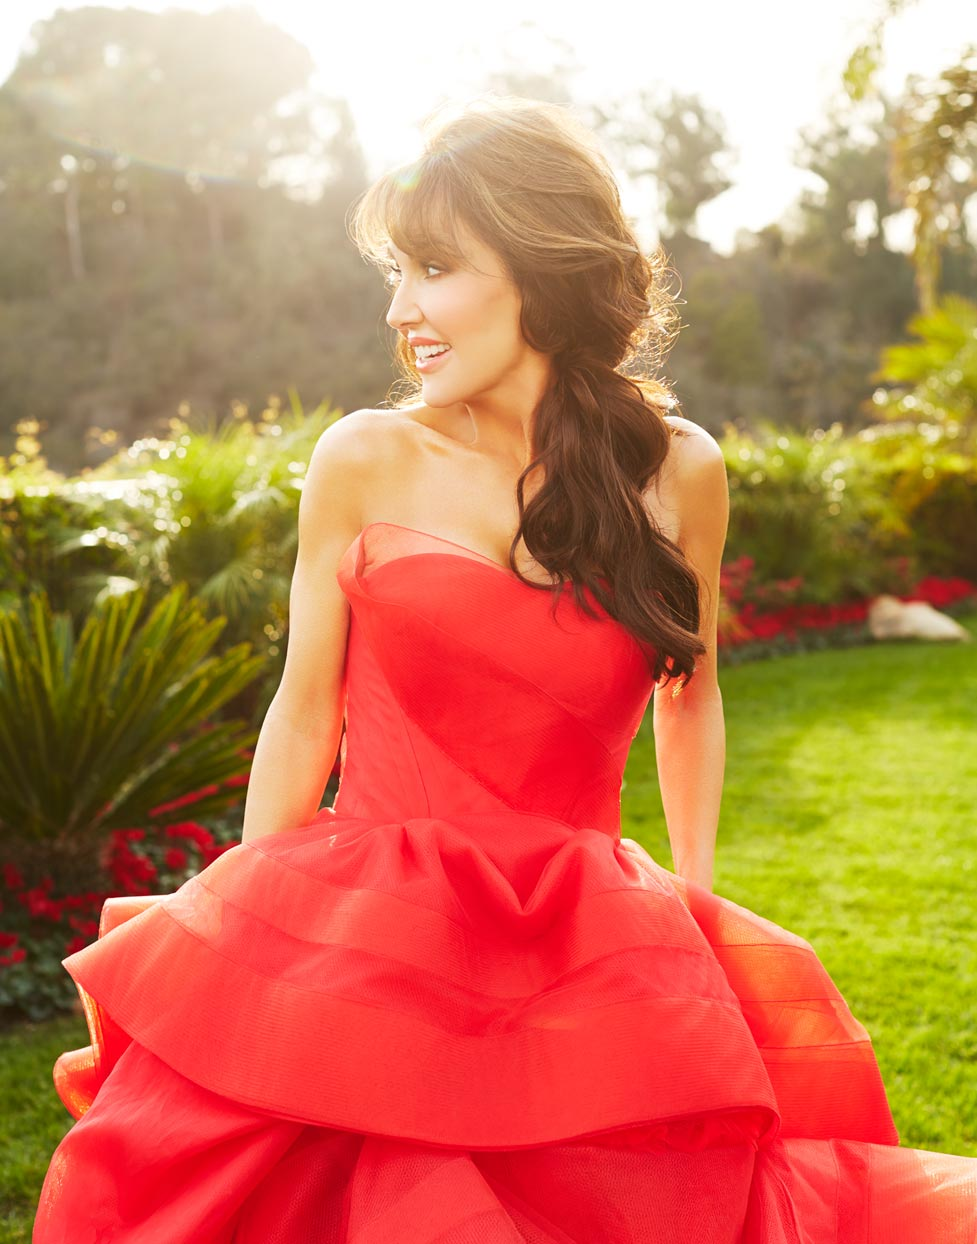 Mark DeLong - Celebrity Photographer - Actress wearing a red dress outside in greenery.